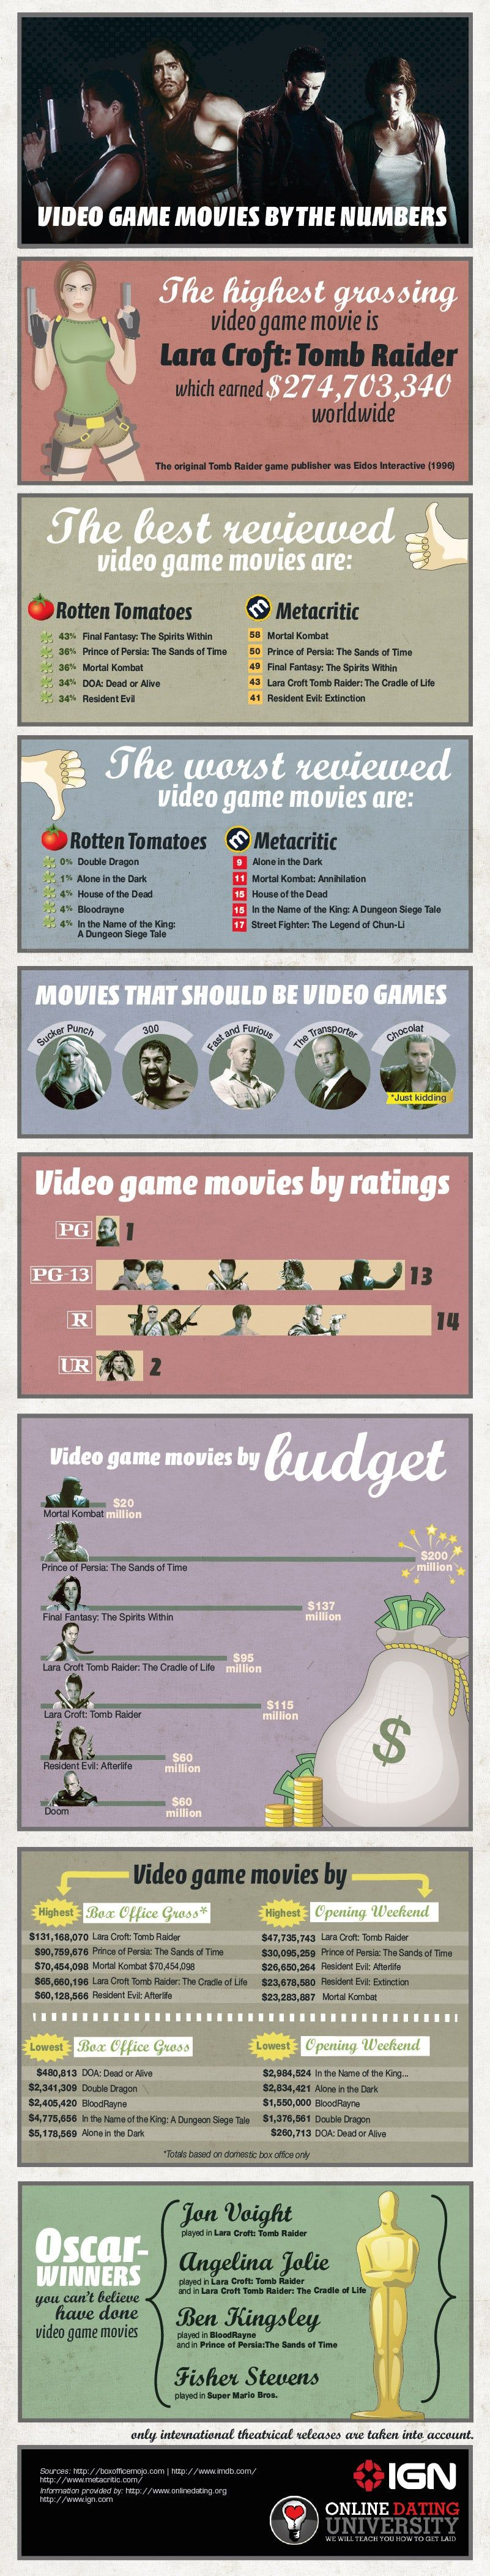 Video-Game-Movies-by-the-Numbers-03_1306278249.jpg